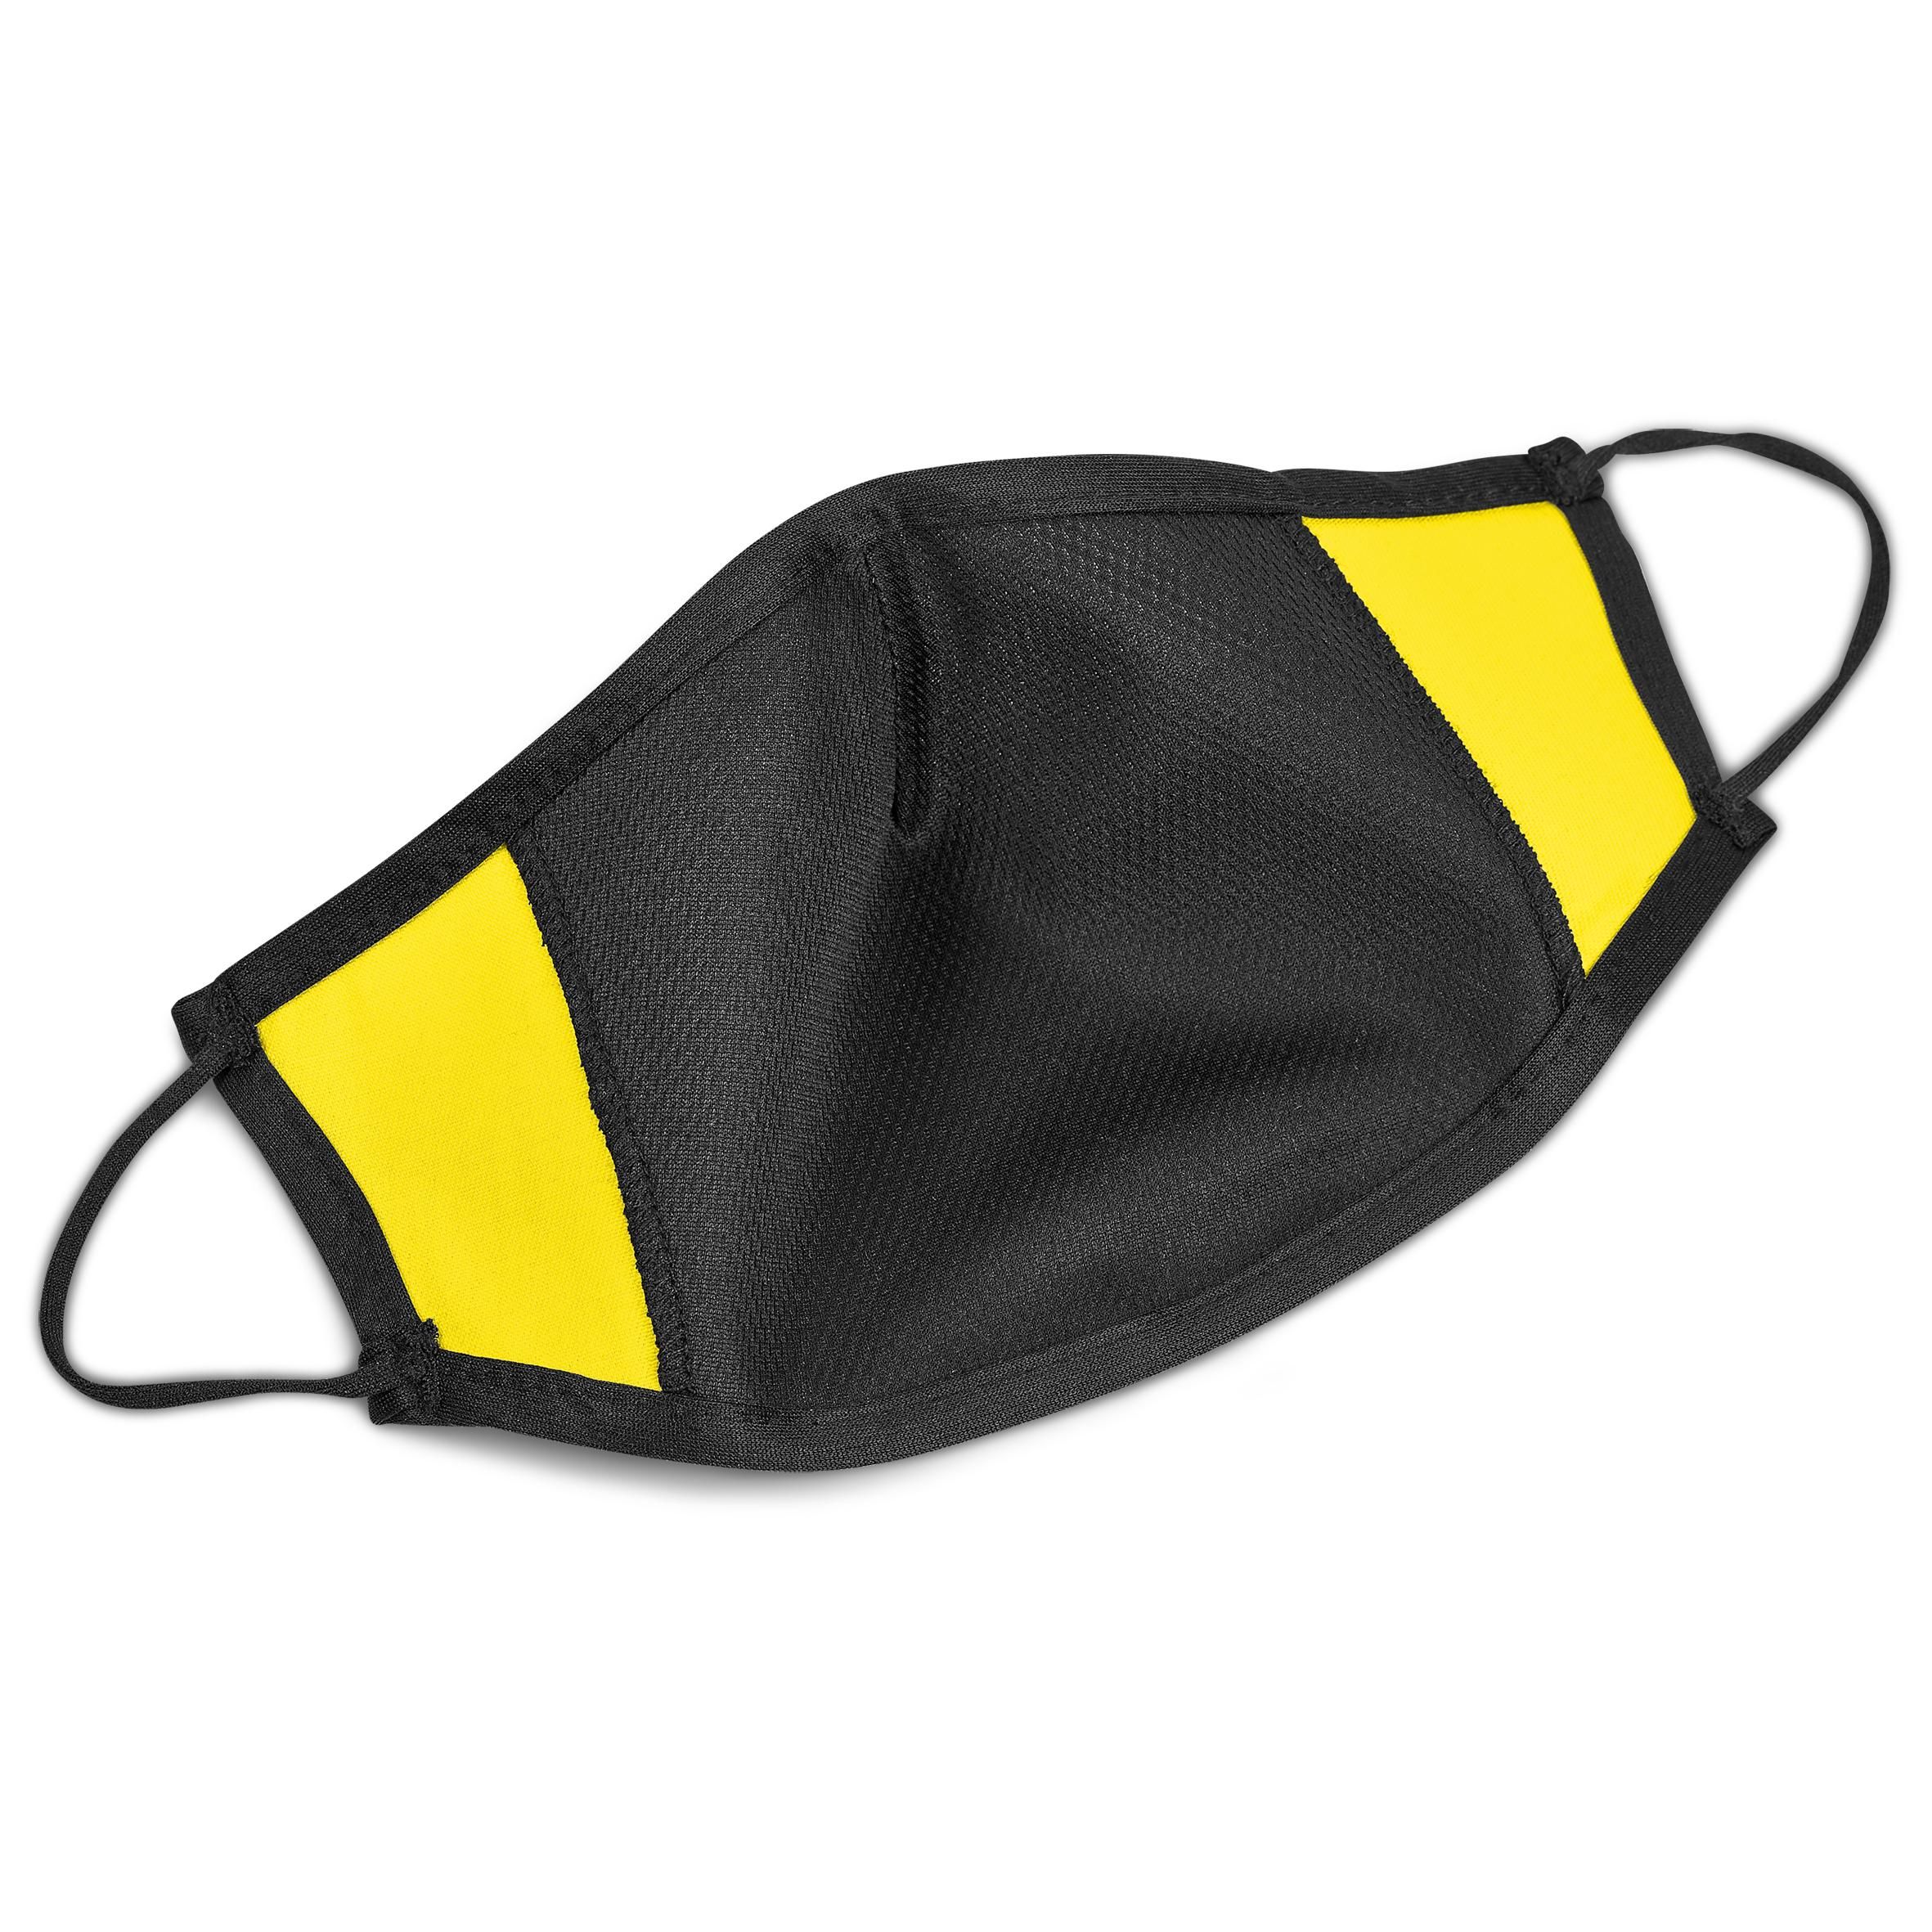 FACE MASKS & SHIELDS   Iona Adults Double-layer Ear Loop Face Mask - 2